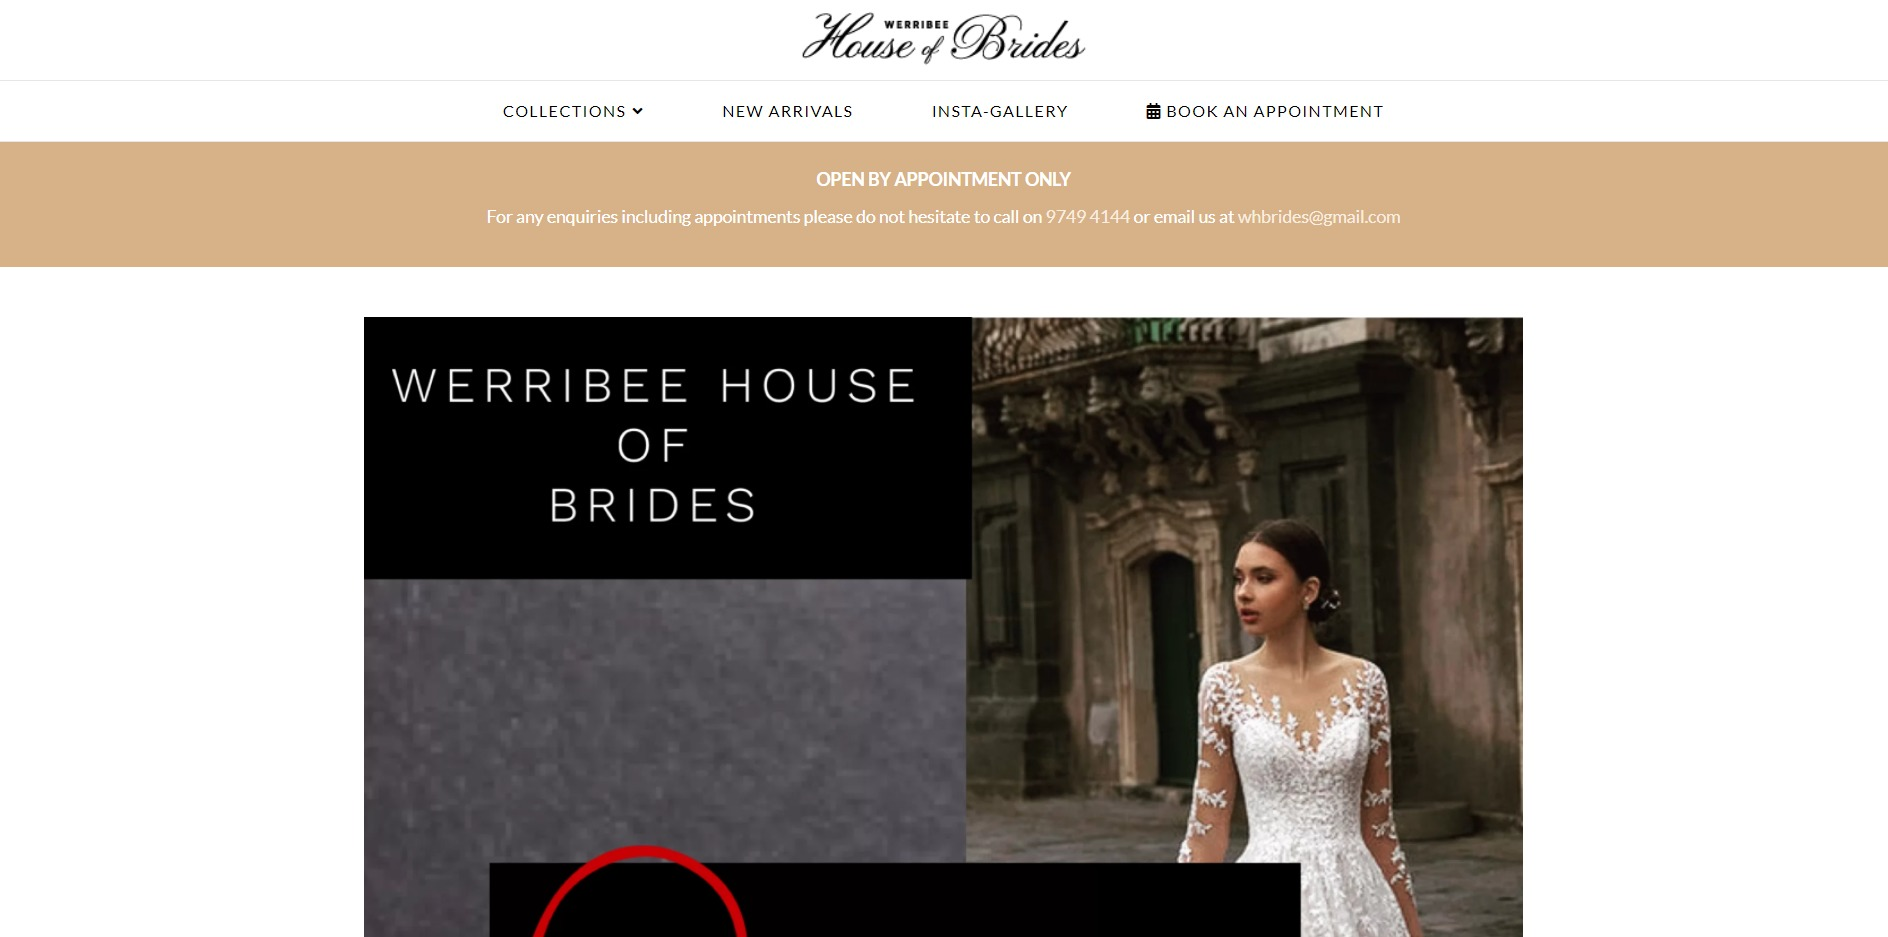 Werribee House Of Brides